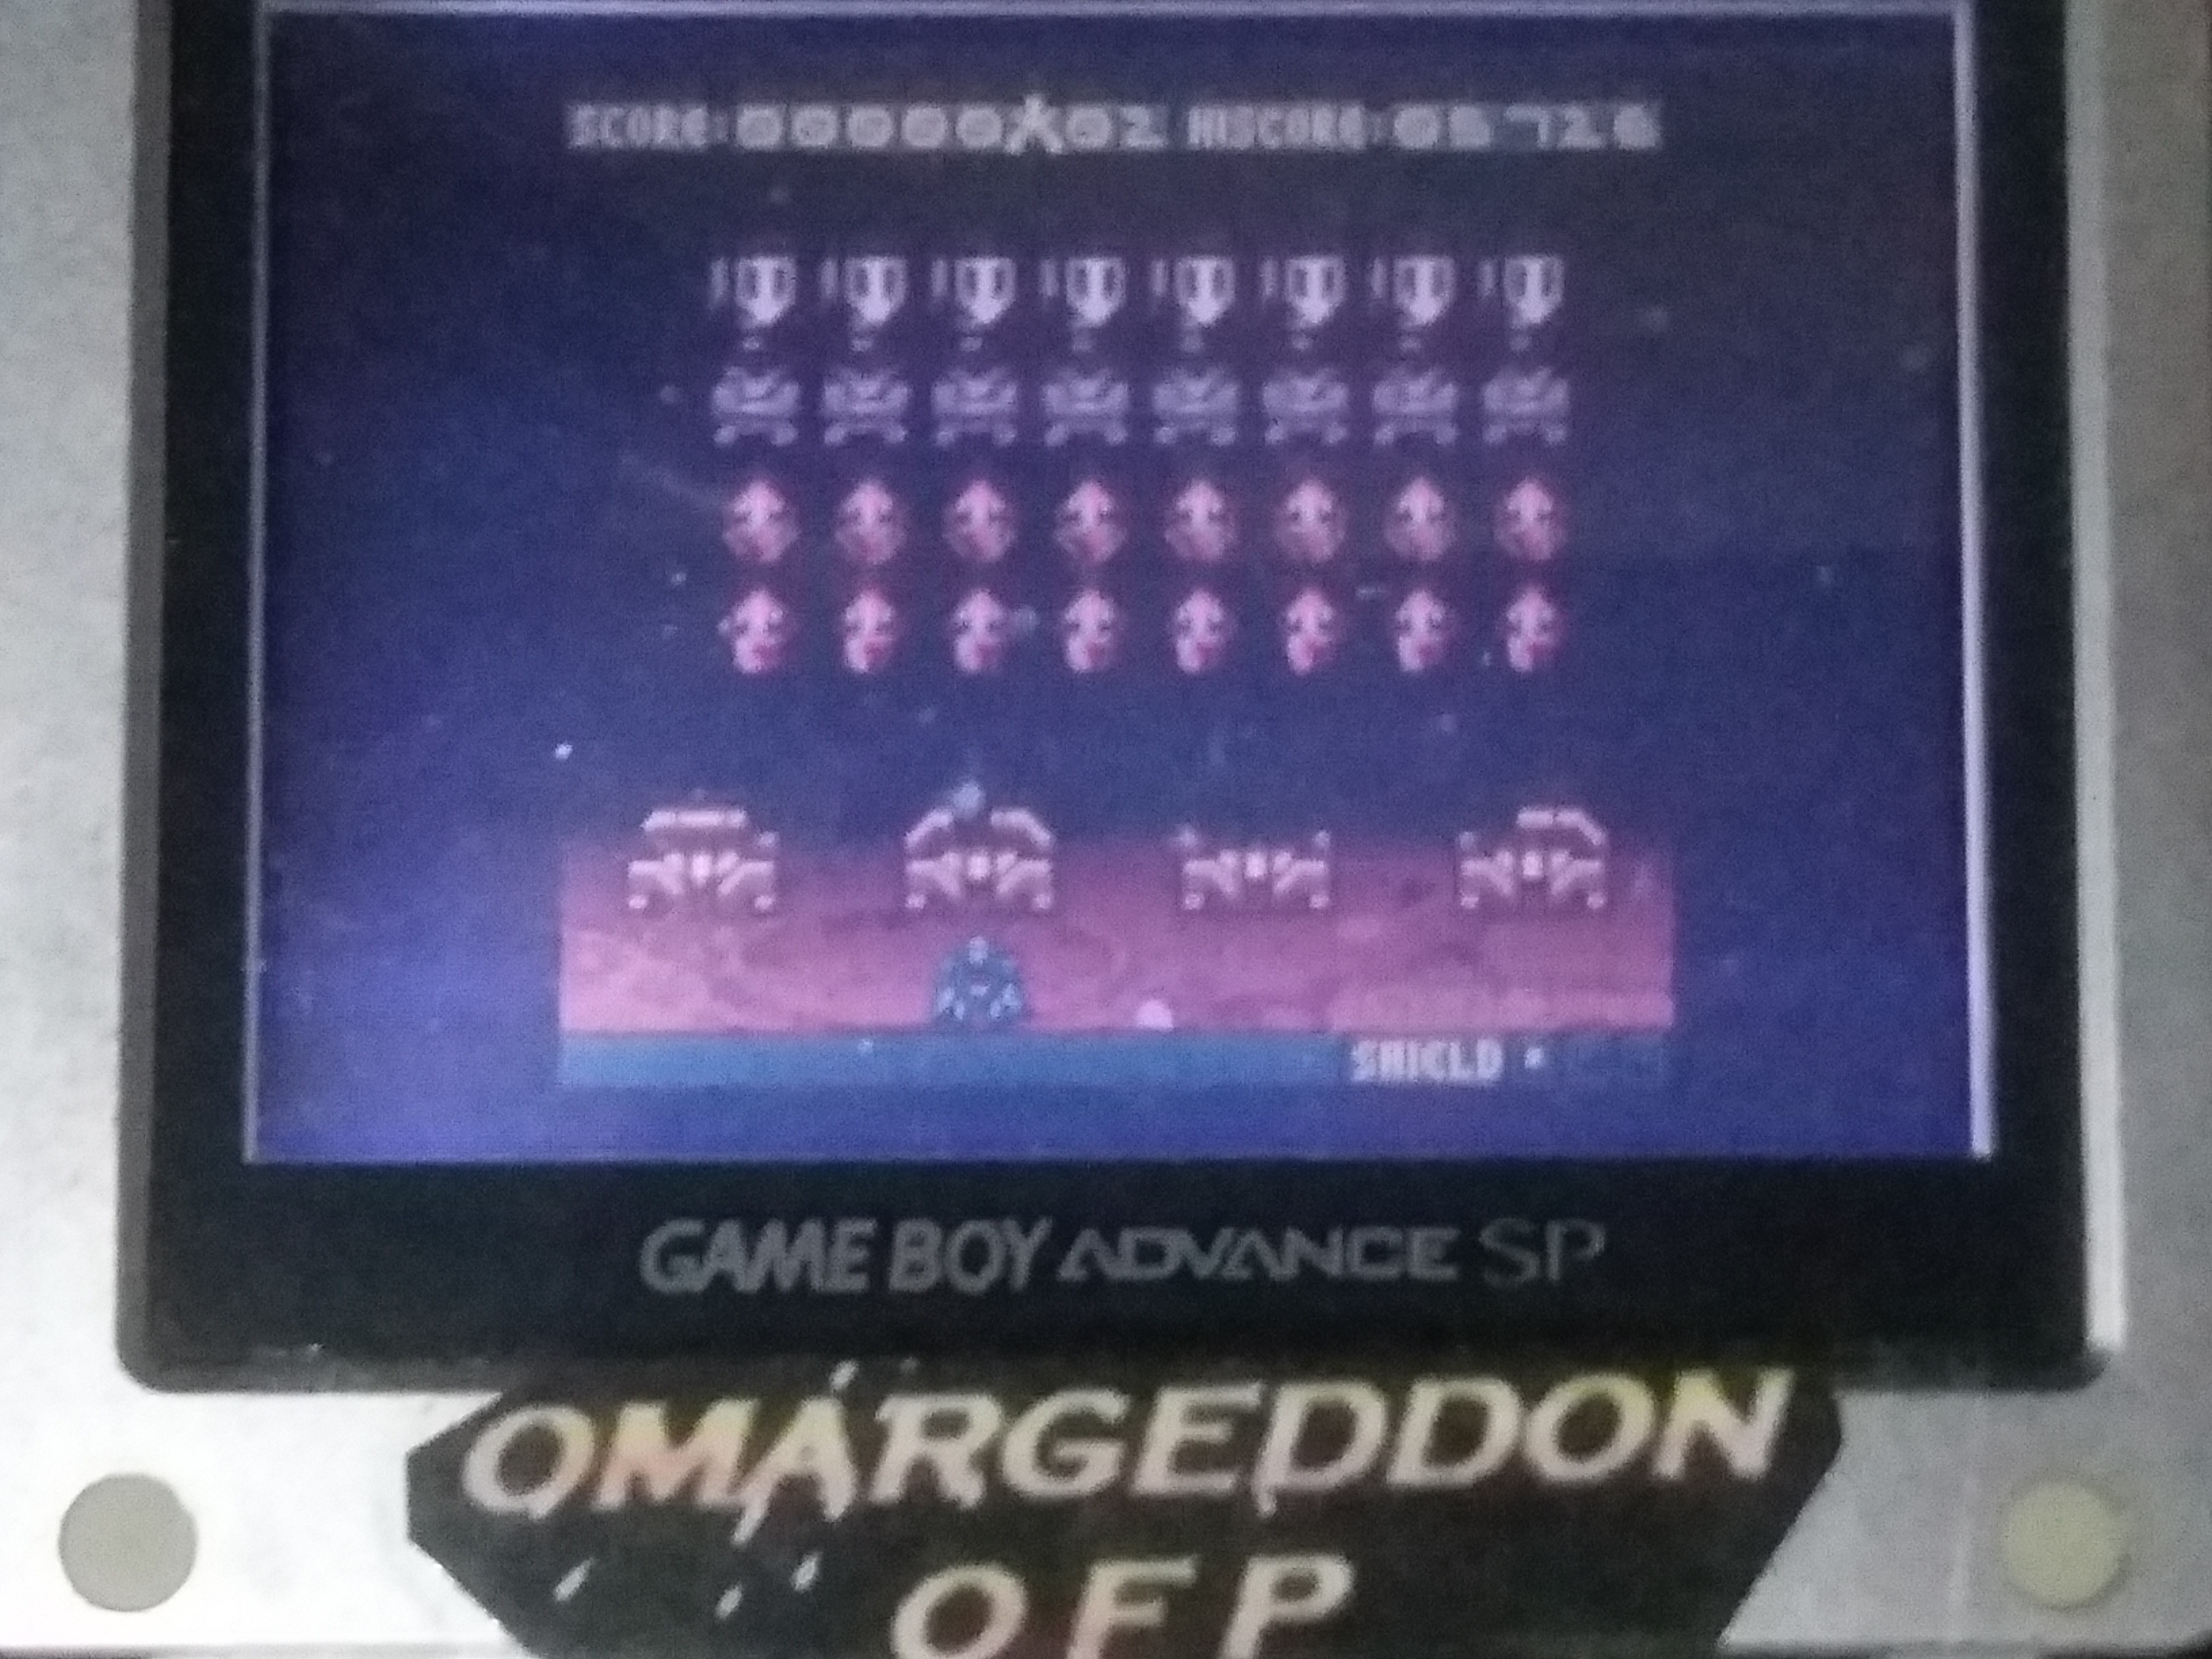 omargeddon: Space Invaders [Normal] (Game Boy Color) 5,726 points on 2018-02-28 20:26:22